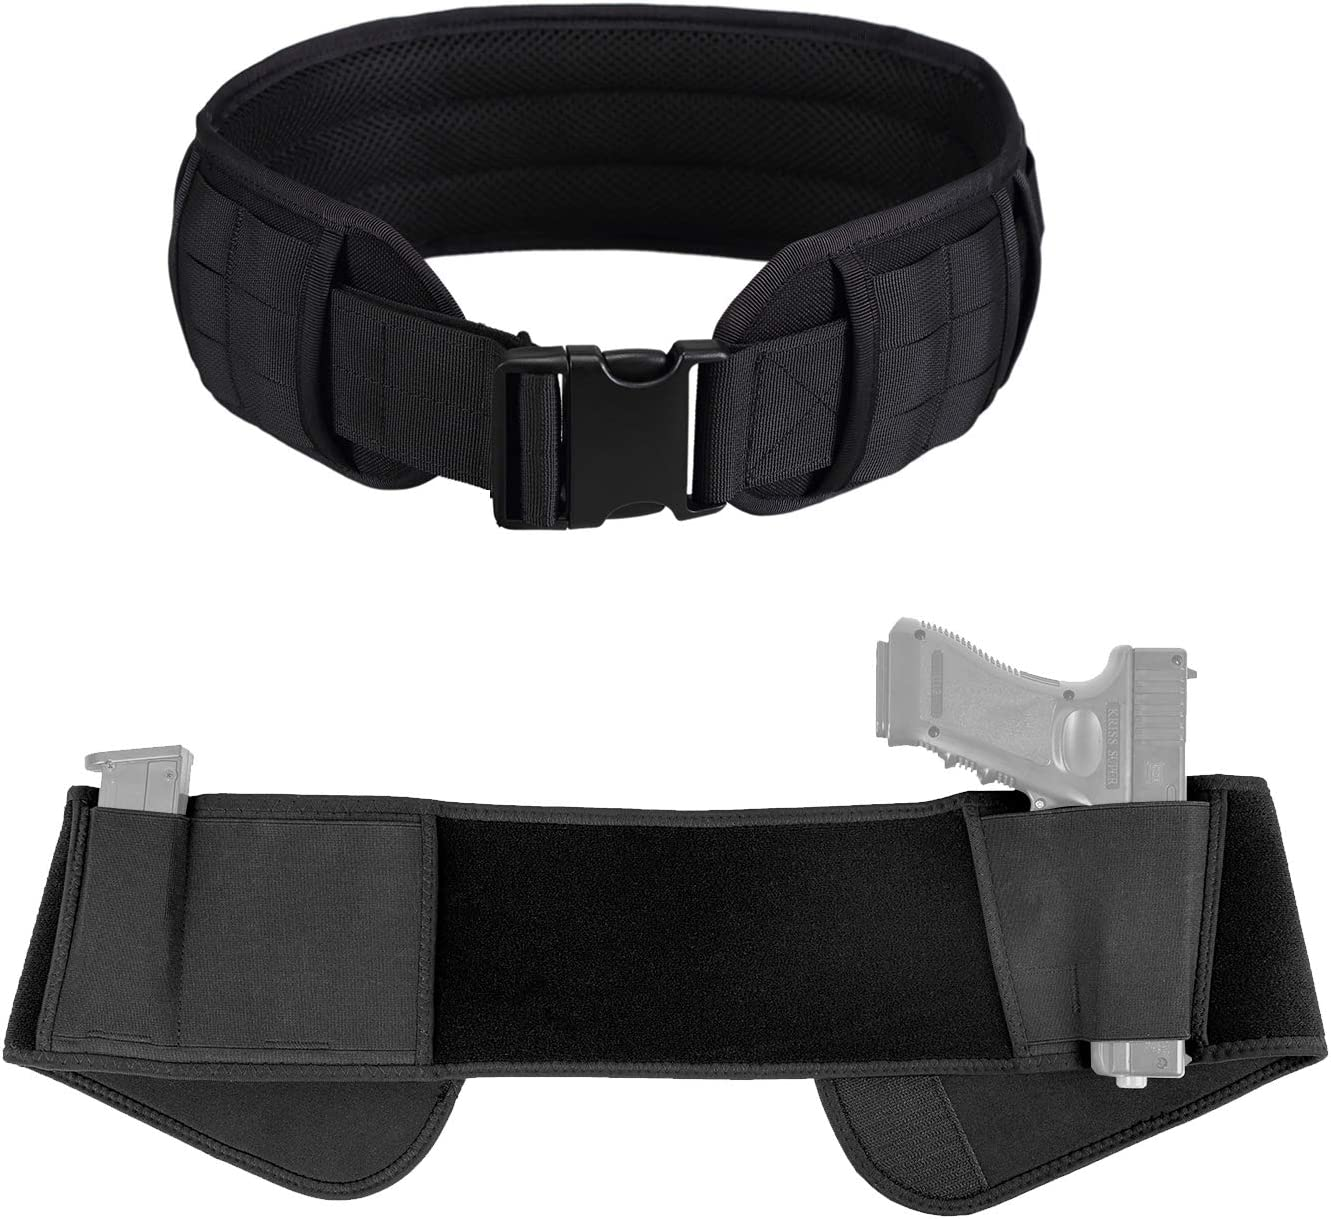 OneTigris Padded Patrol Belt Belly Max 79% OFF Band Our shop most popular Holster